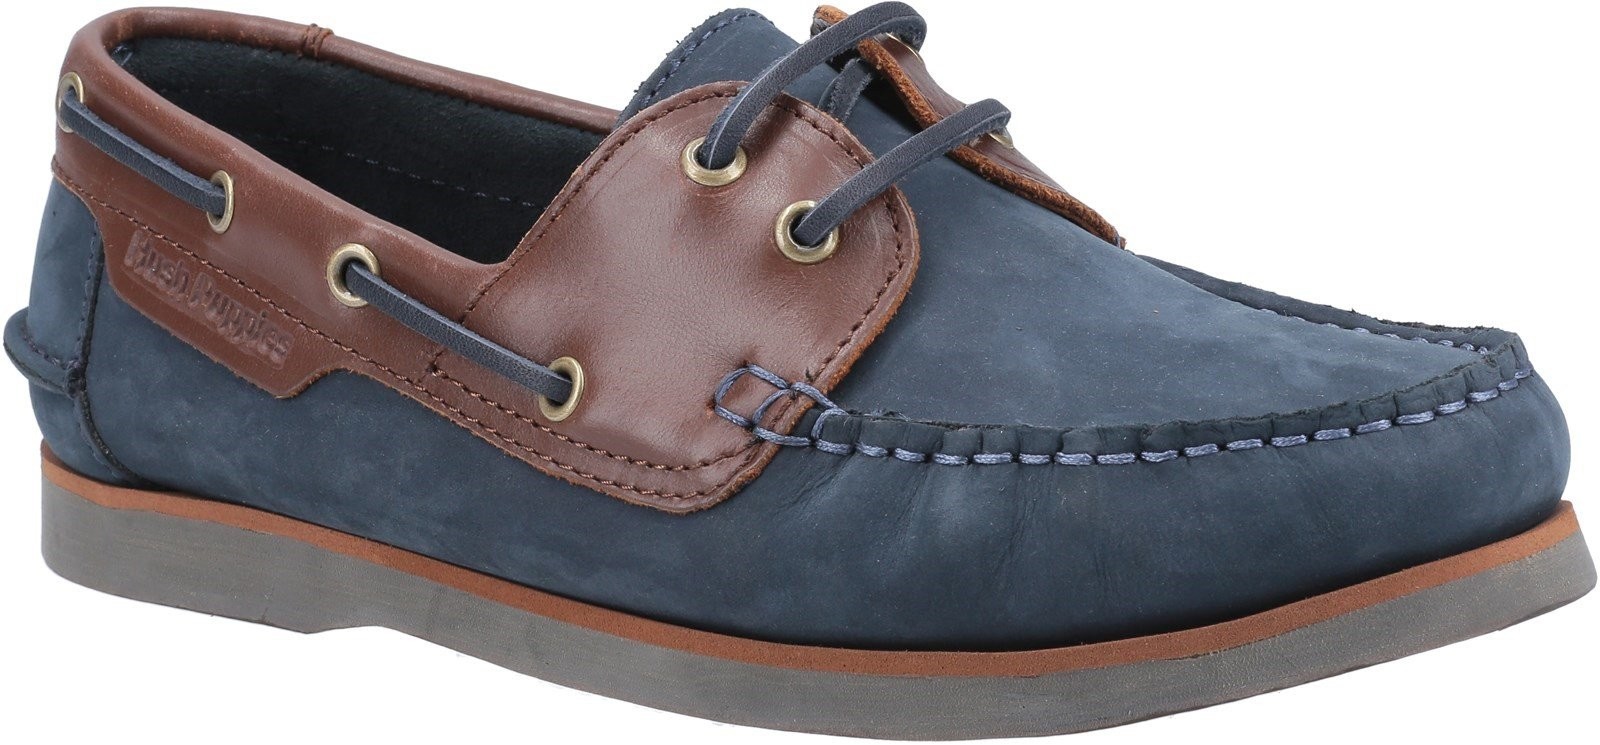 Hush Puppies Women's Hattie Lace Loafer Various Colours 30223 - Navy/Tan 3